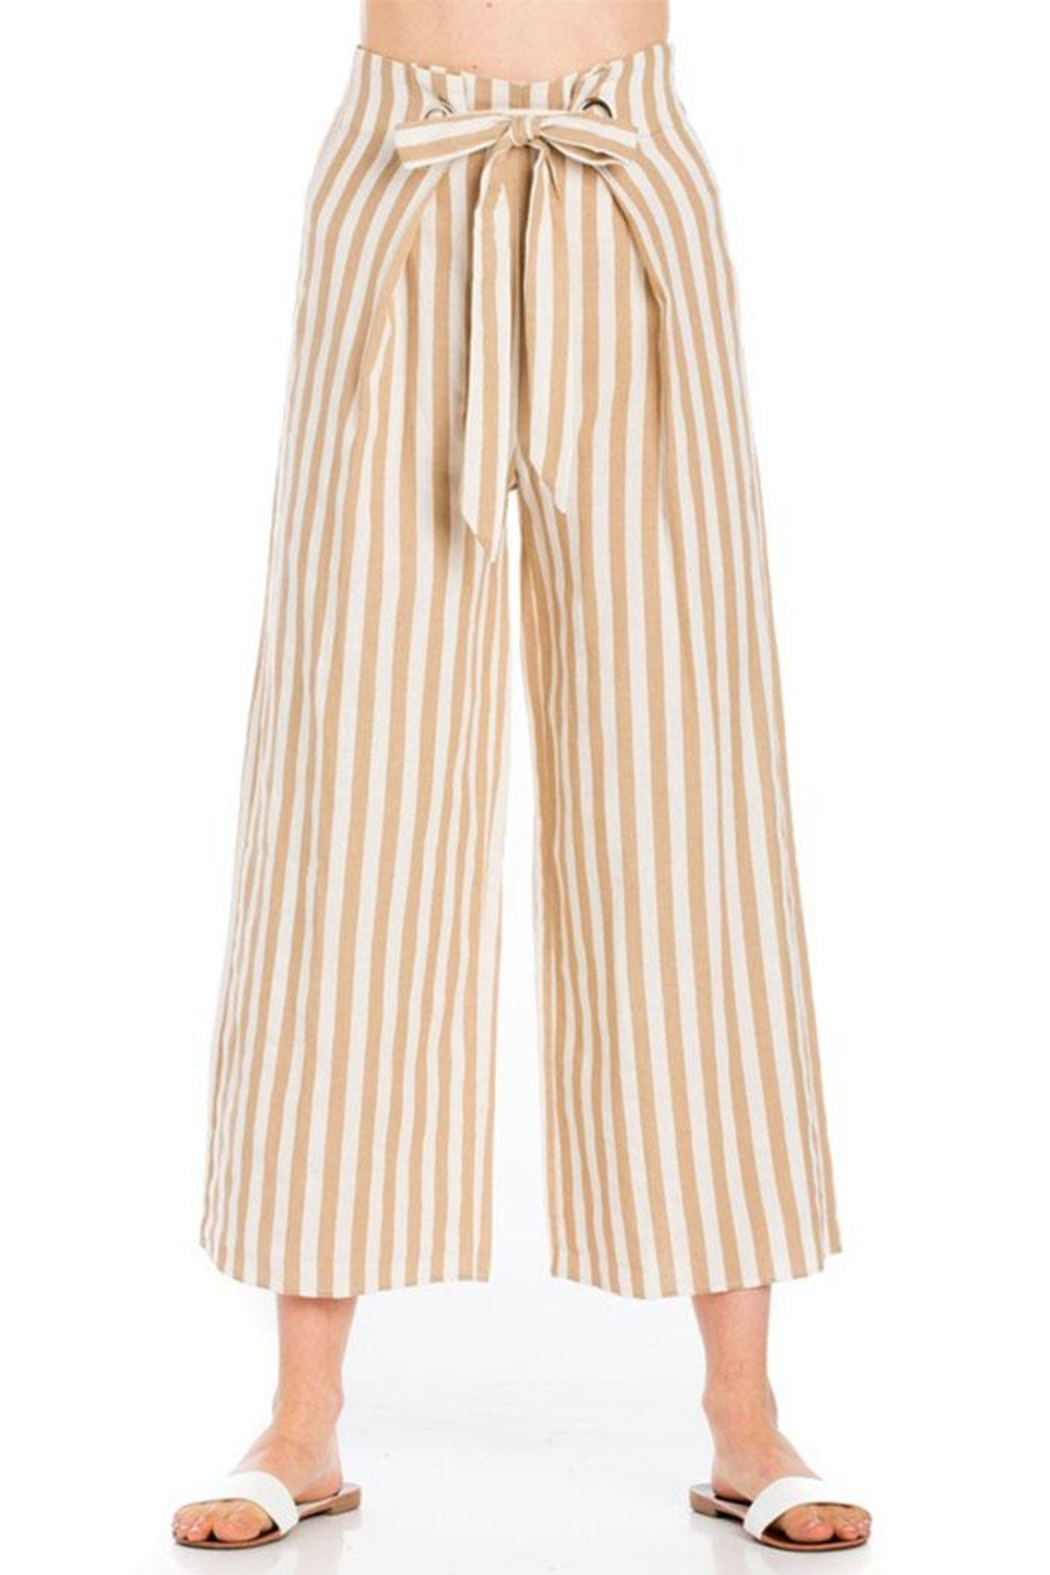 lunik Striped Tie Pants - Front Cropped Image